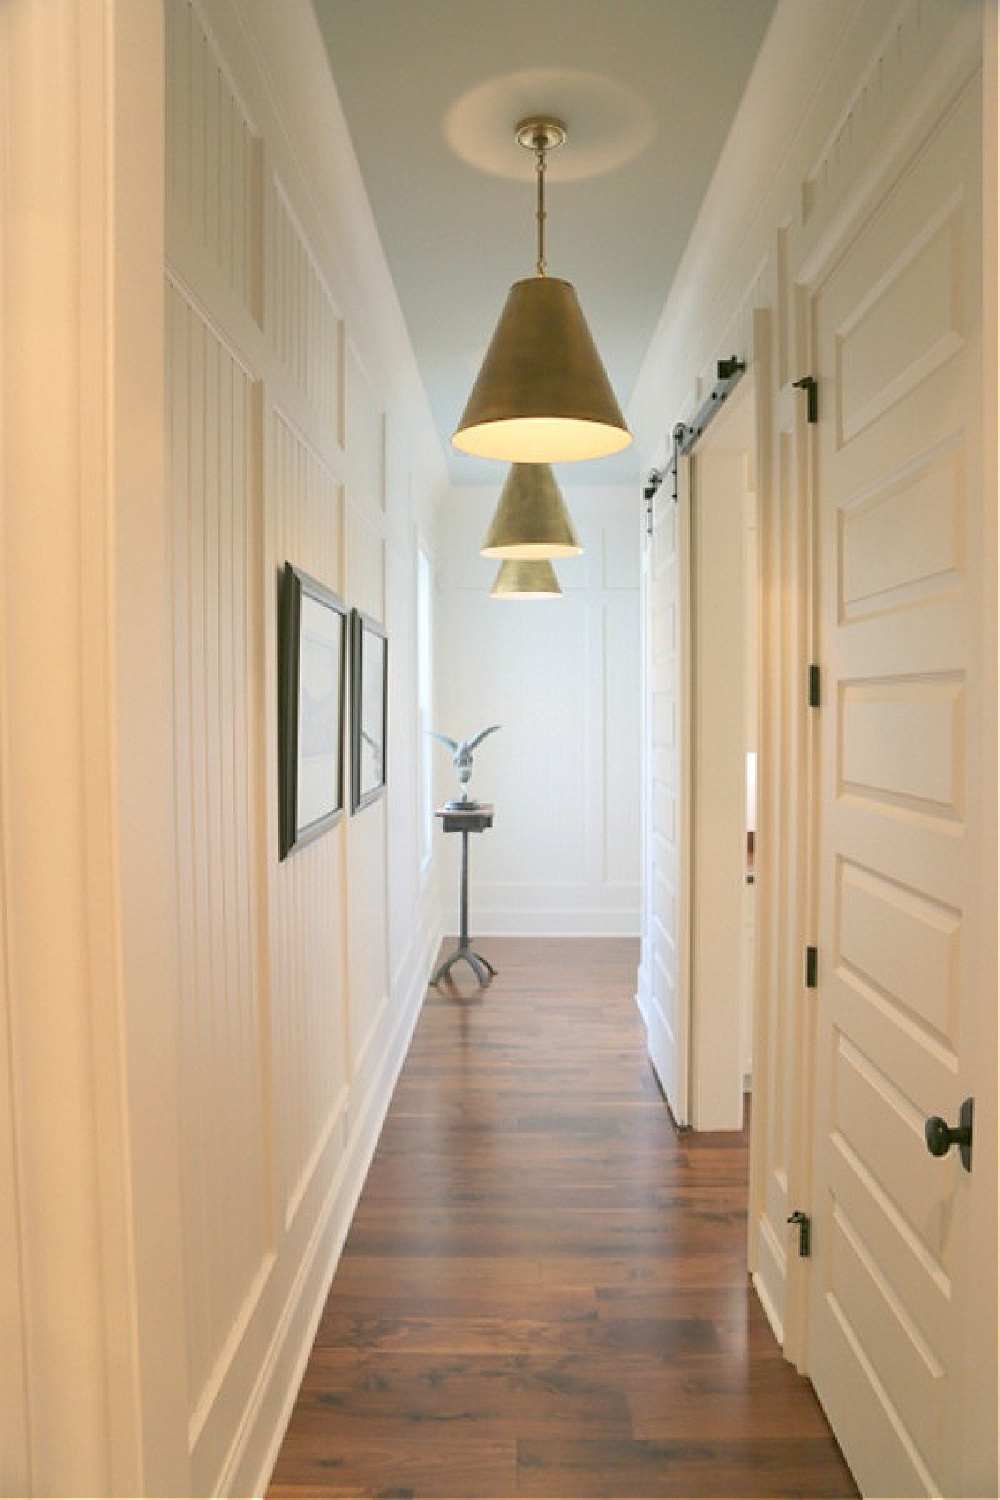 SHERWIN WILLIAMS Rainwashed on ceiling of Southern Living Showcase  hallway. Photo: The Decorologist.